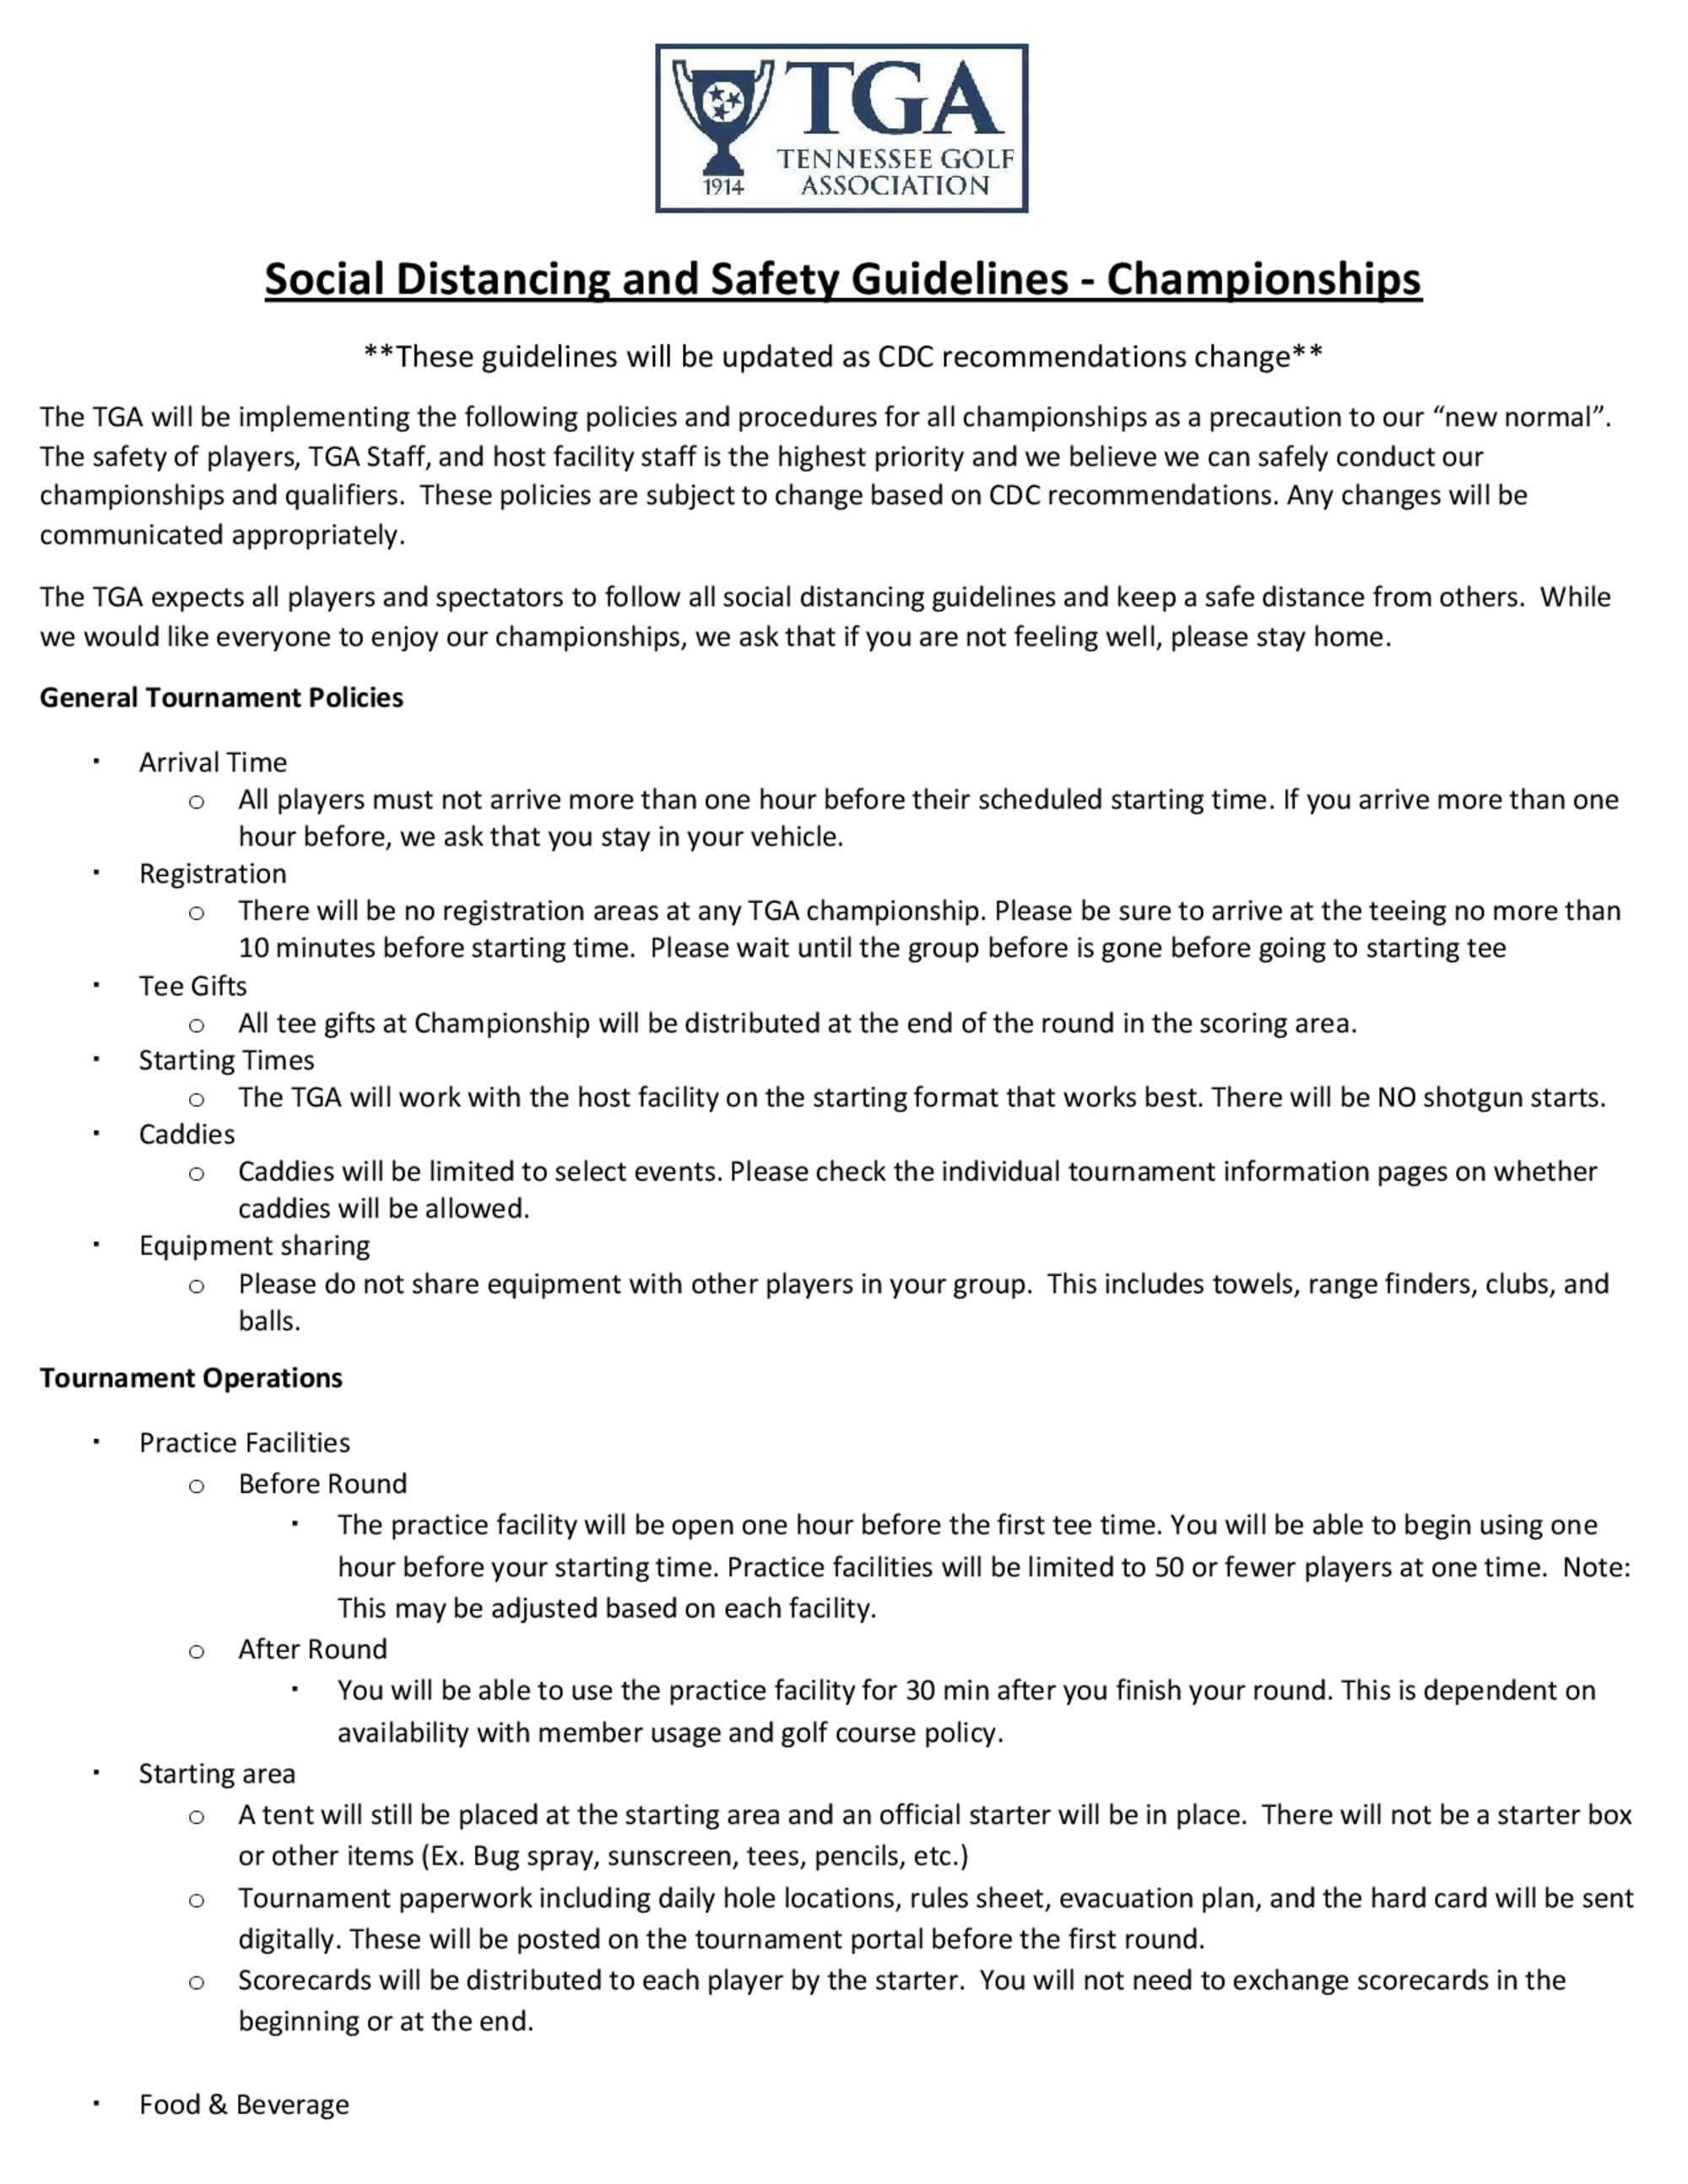 Tga social distancing and safety guidelines   championships 1